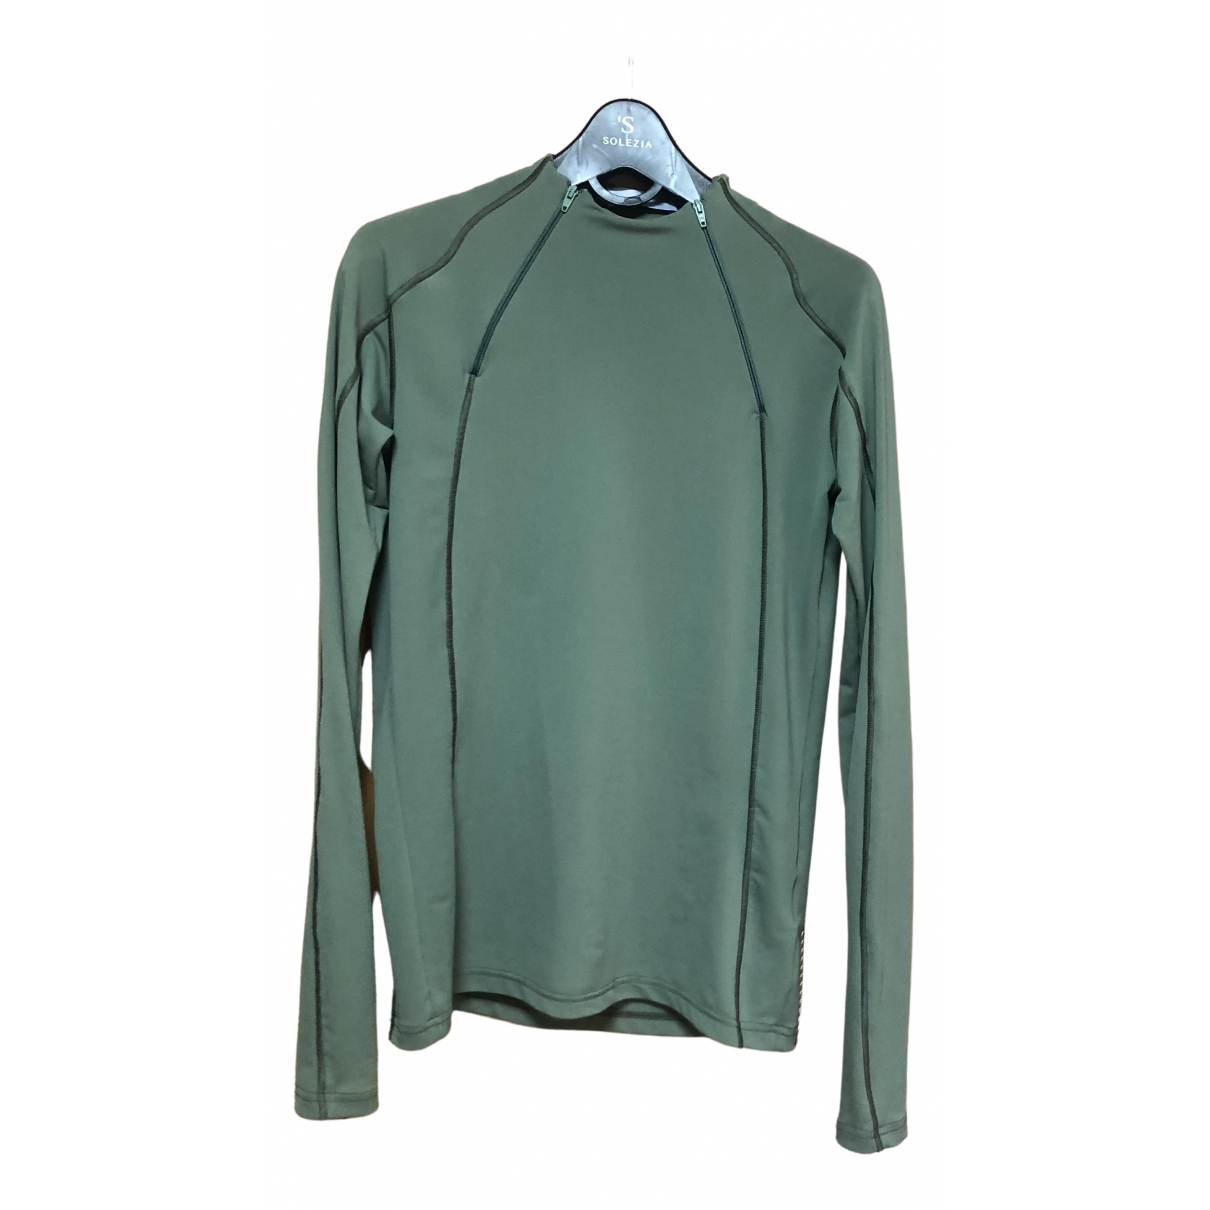 Gmbh - Tee shirts   pour homme - vert